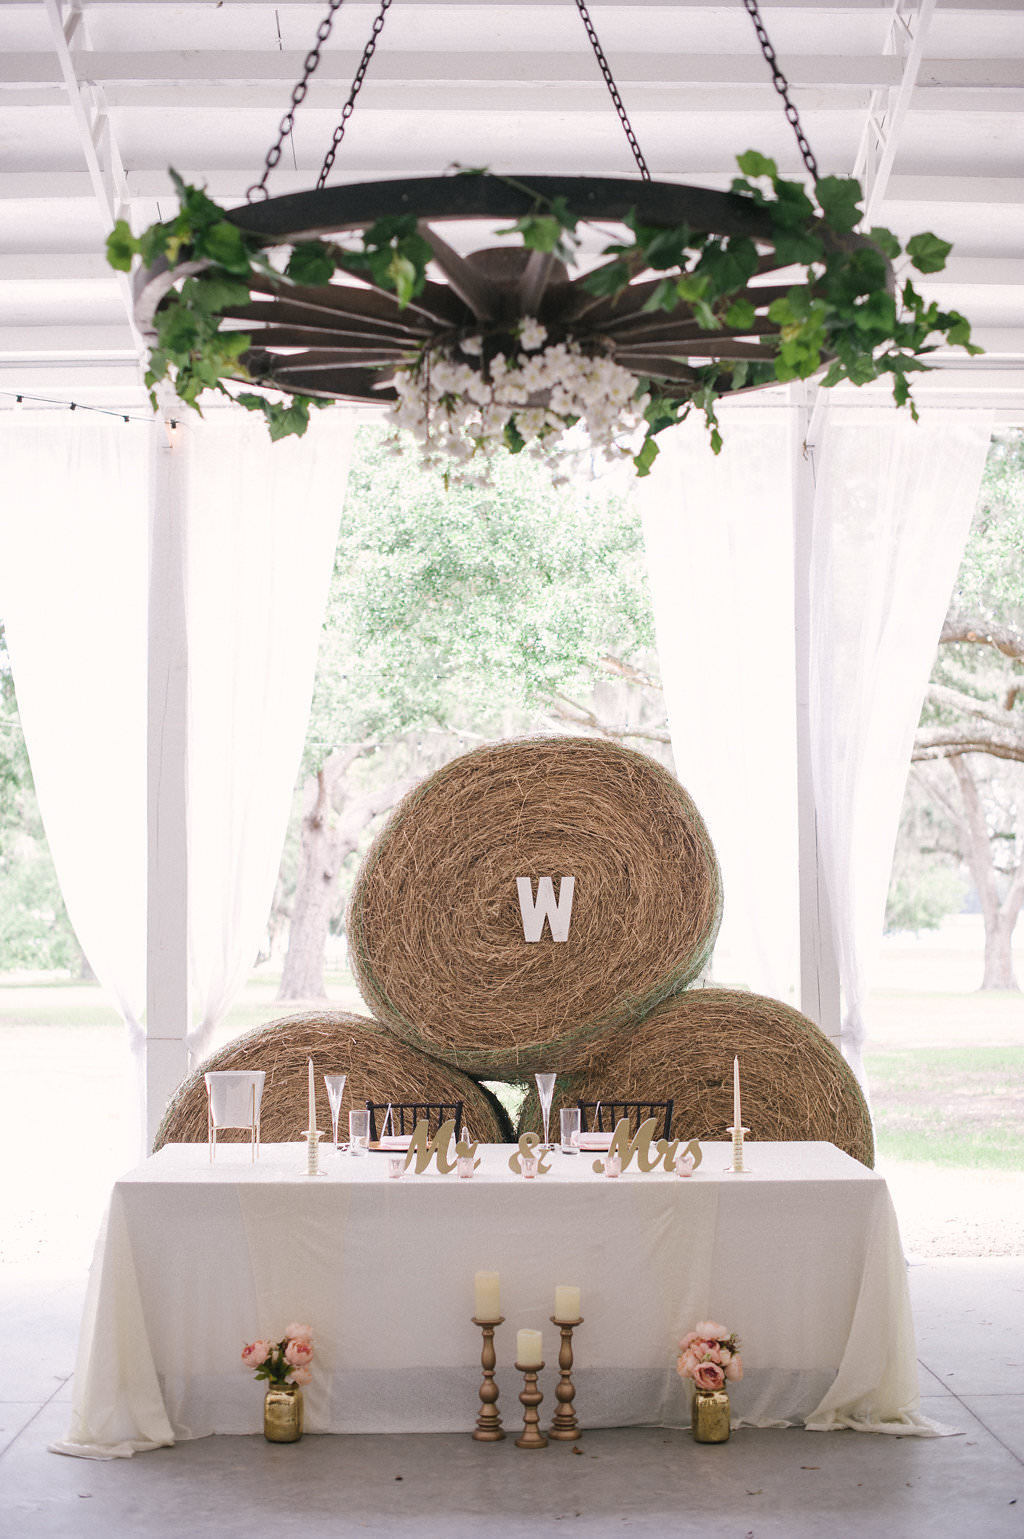 Tampa Bay Rustic Wedding Reception Decor, Sweetheart Table with White Tablecloth, Gold Candlesticks, Blush Pink Floral Arrangements in Gold Vases, Gold Mr and Mrs Signs, Hay Barrels Backdrop, Wooden Wheel Chandelier Decorated with Greenery and White Florals